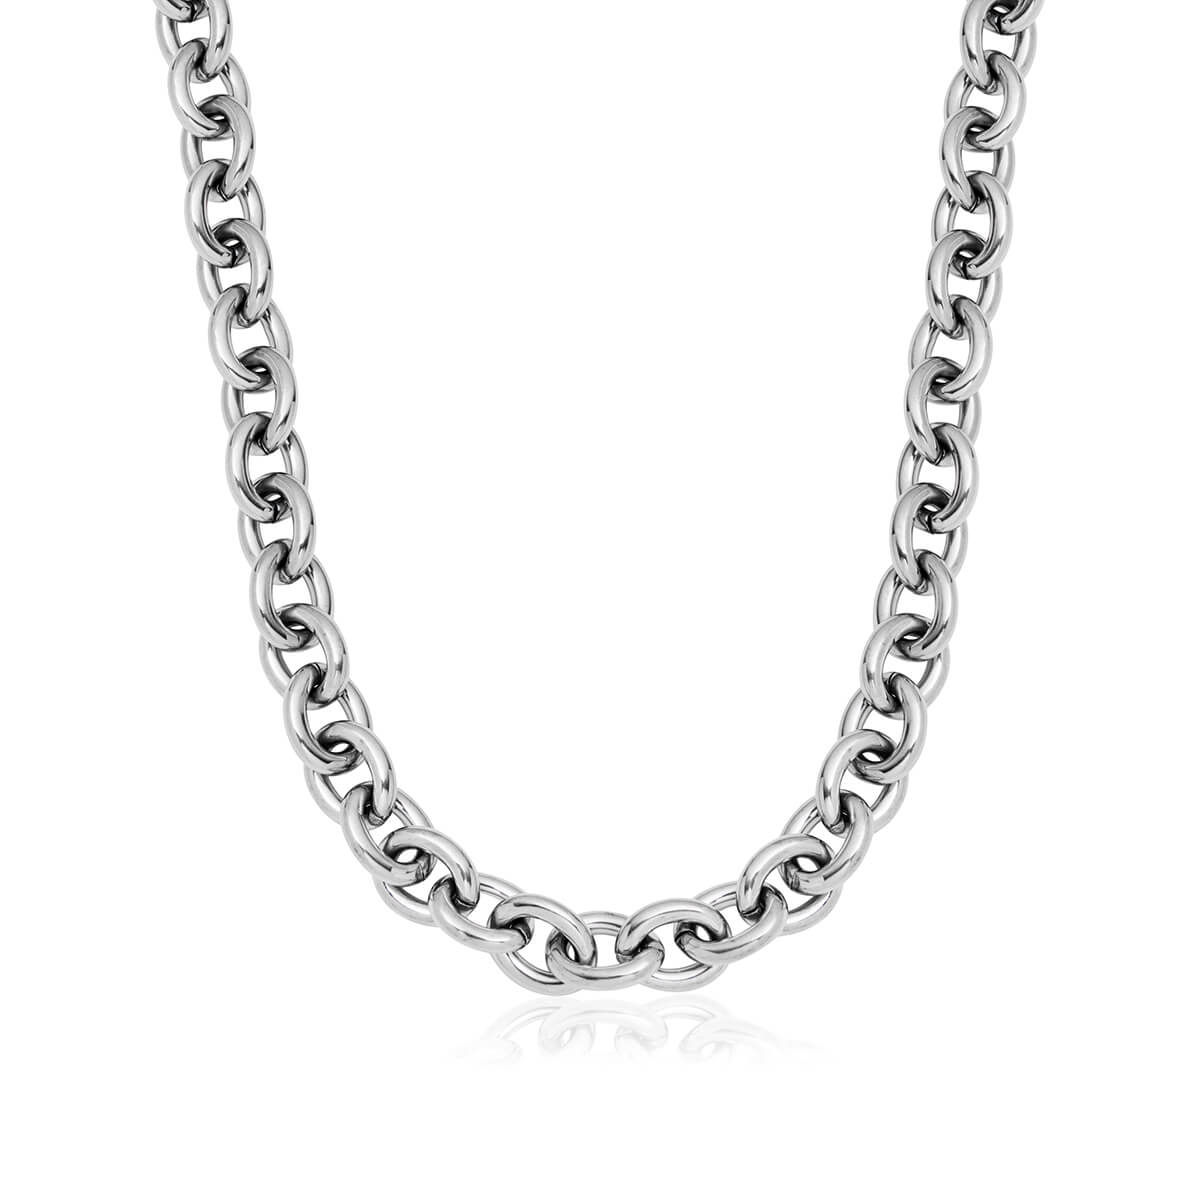 Oval Link Chain Necklace (Silver)